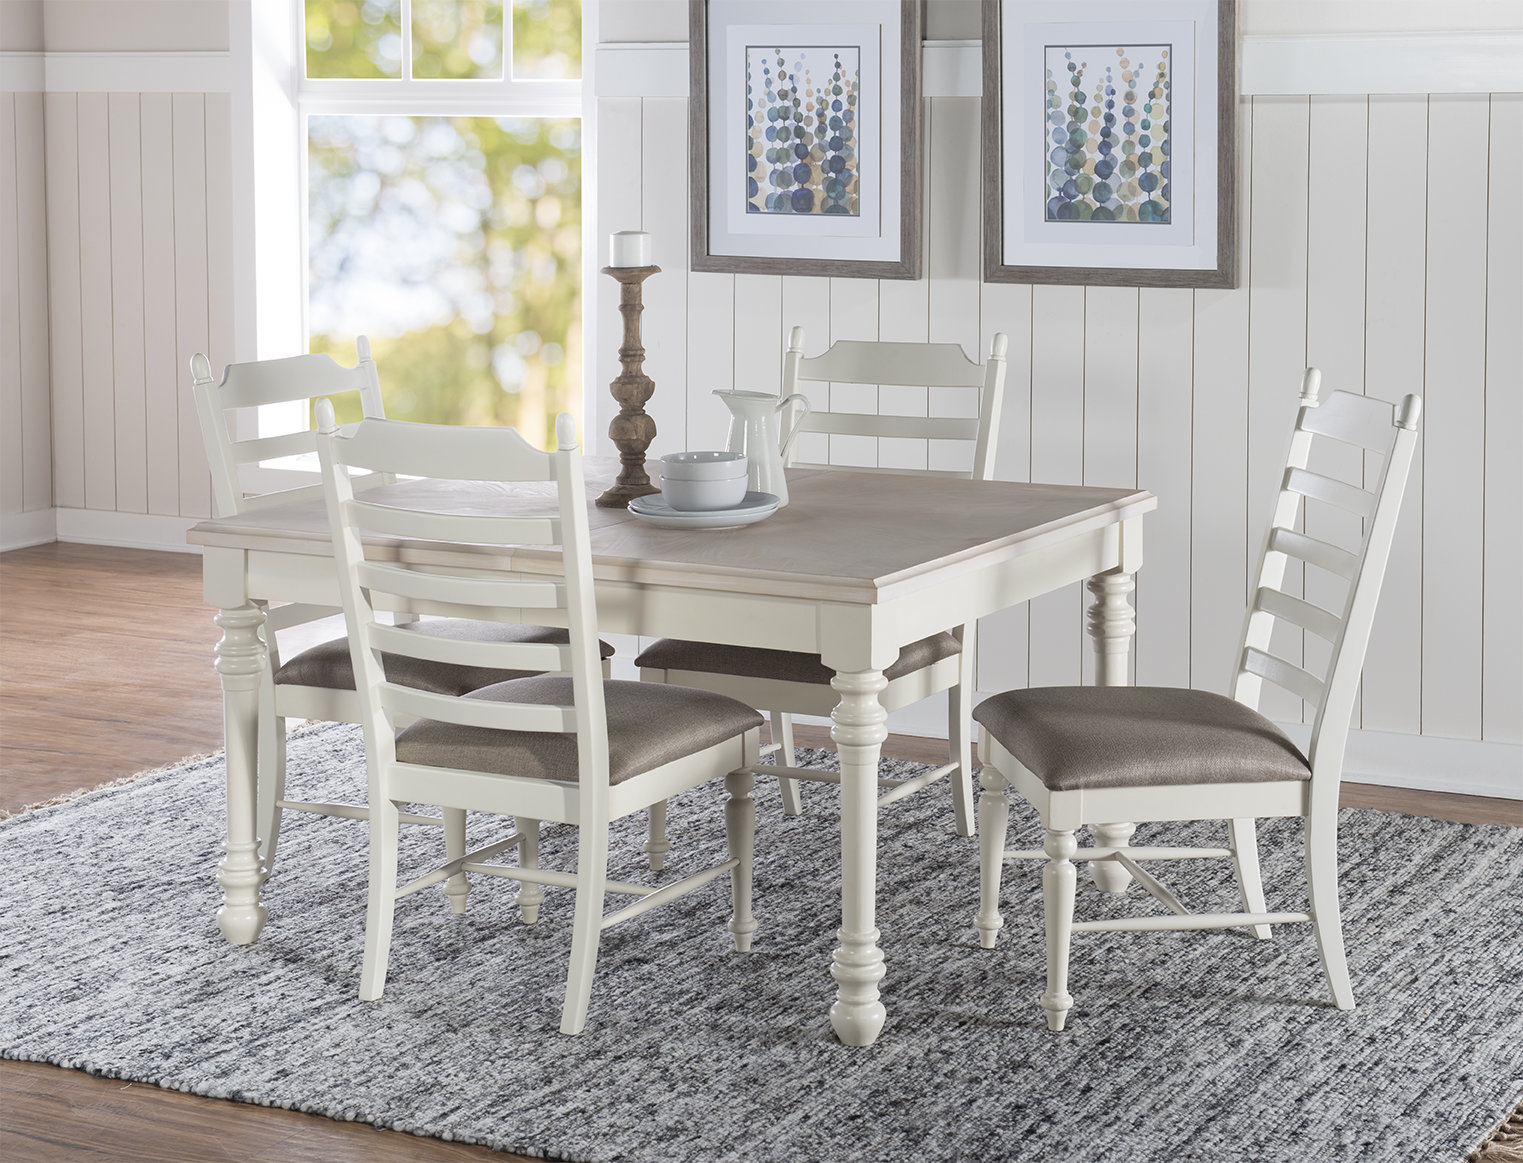 Slater 5 Piece Dining Set Pertaining To Latest Valladares 3 Piece Pub Table Sets (View 7 of 20)